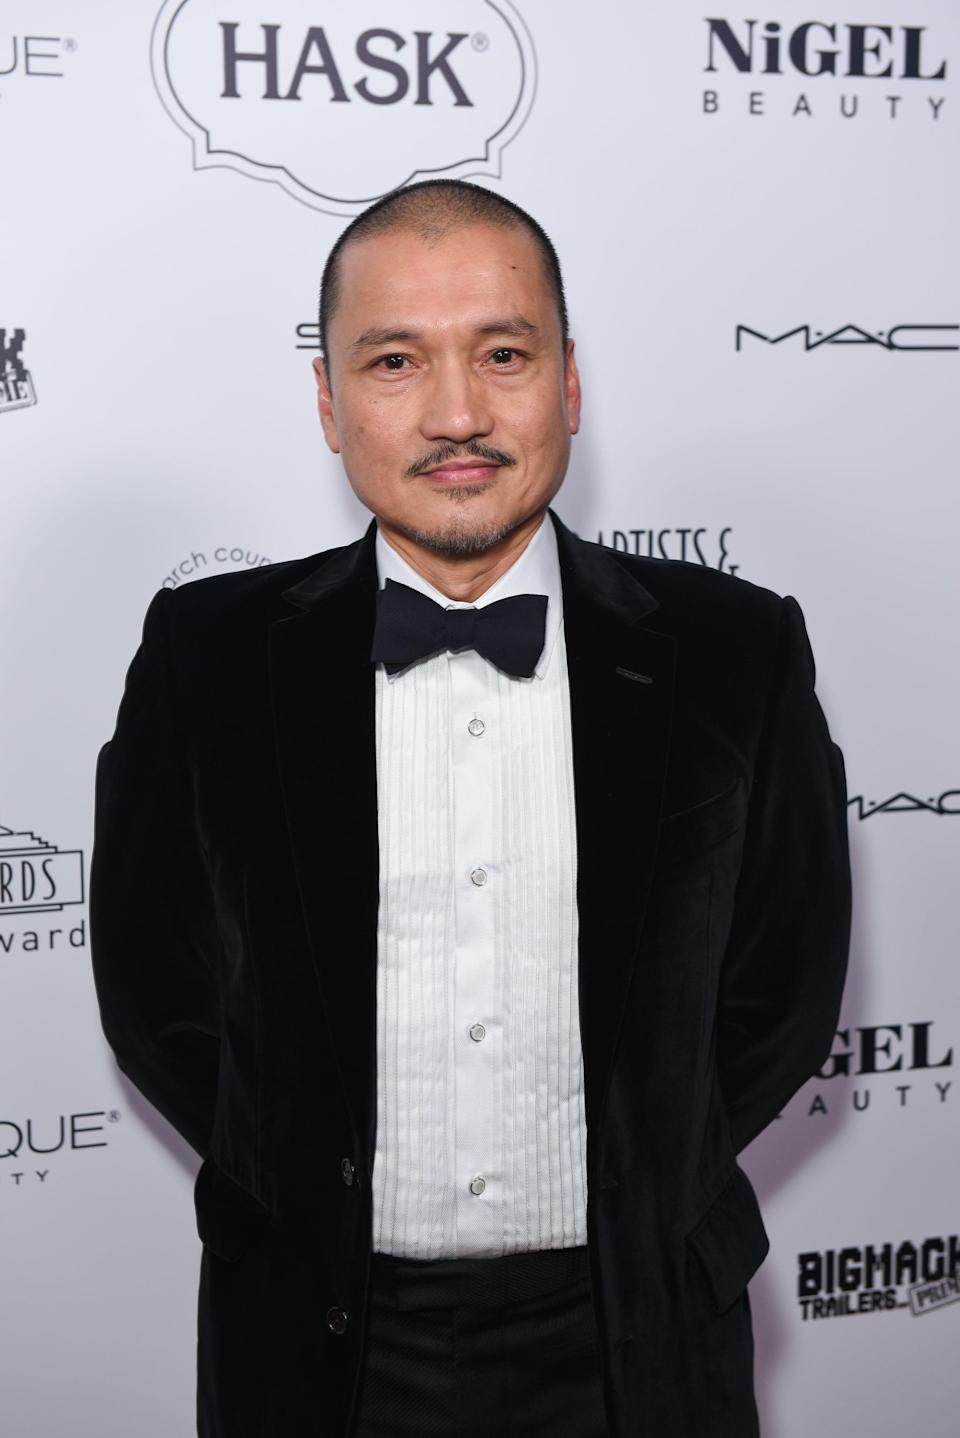 <p>Briones is best known for his roles in <strong>American Horror Story</strong> and <strong>The Assassination of Gianni Versace</strong>, as well as his turn as the Engineer in the 2017 Broadway revival of <strong>Miss Saigon</strong>. On <strong>Ratched</strong>, he'll be playing Dr. Hanover, a doctor whose treatments are as groundbreaking as they are controversial.</p>